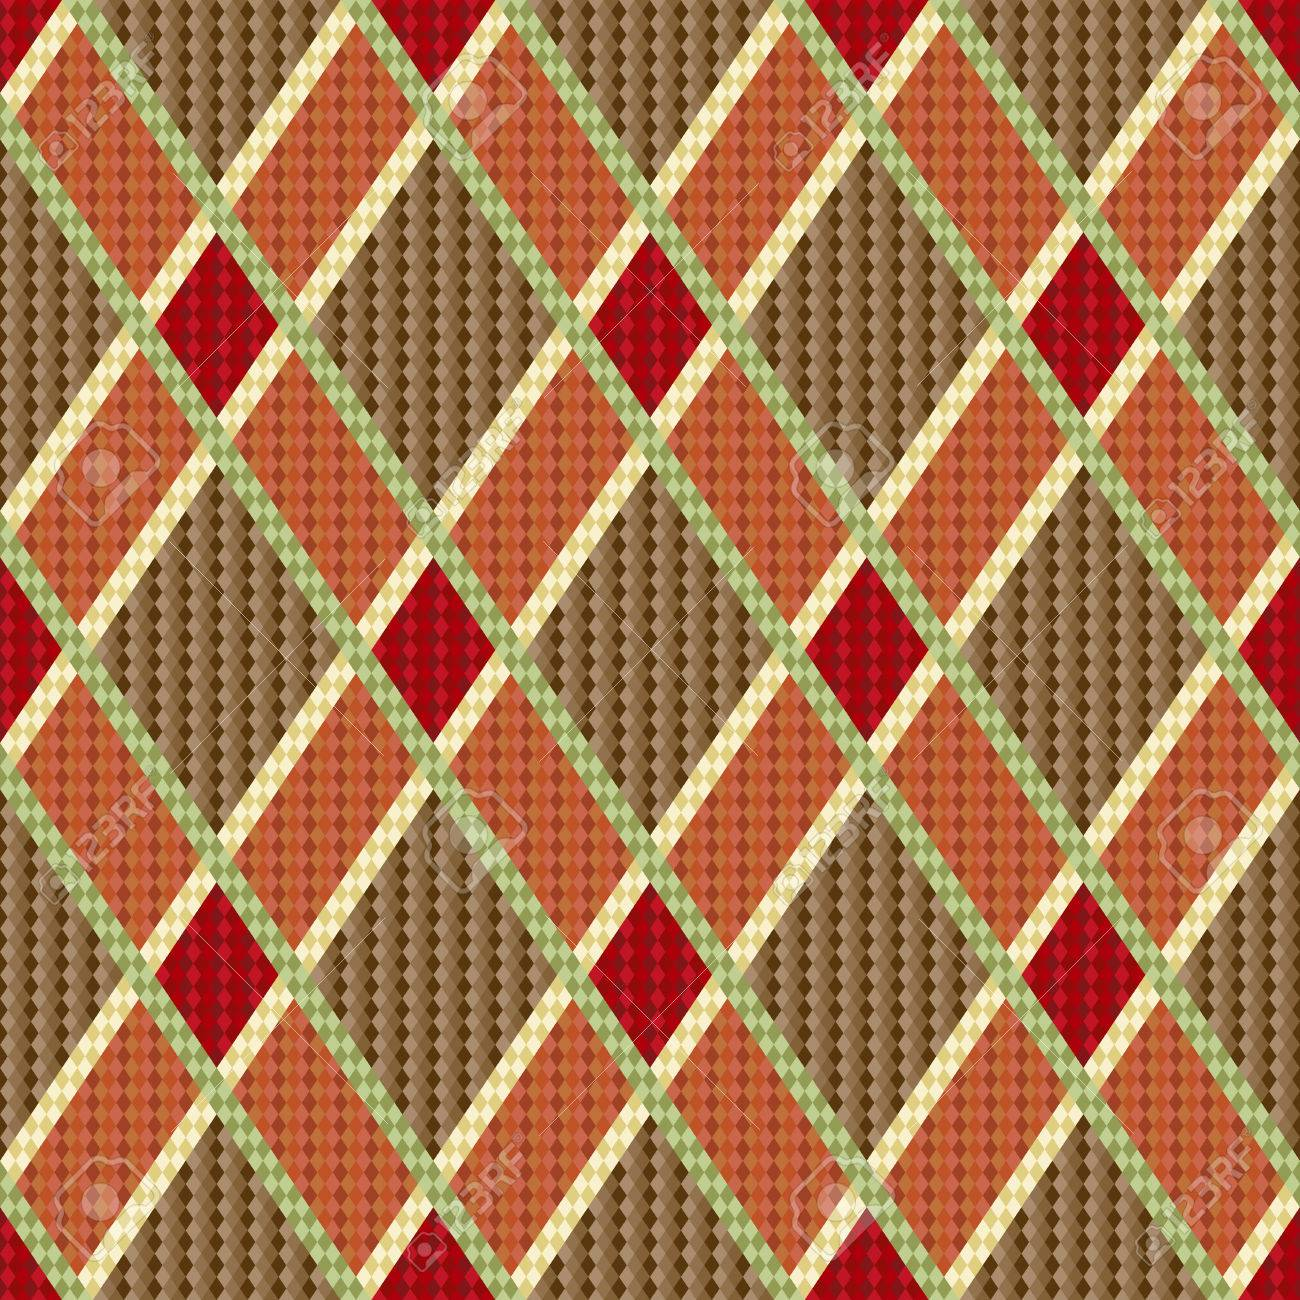 Rhombic seamless red and brown vector pattern as a tartan plaid Stock Vector - 26551743